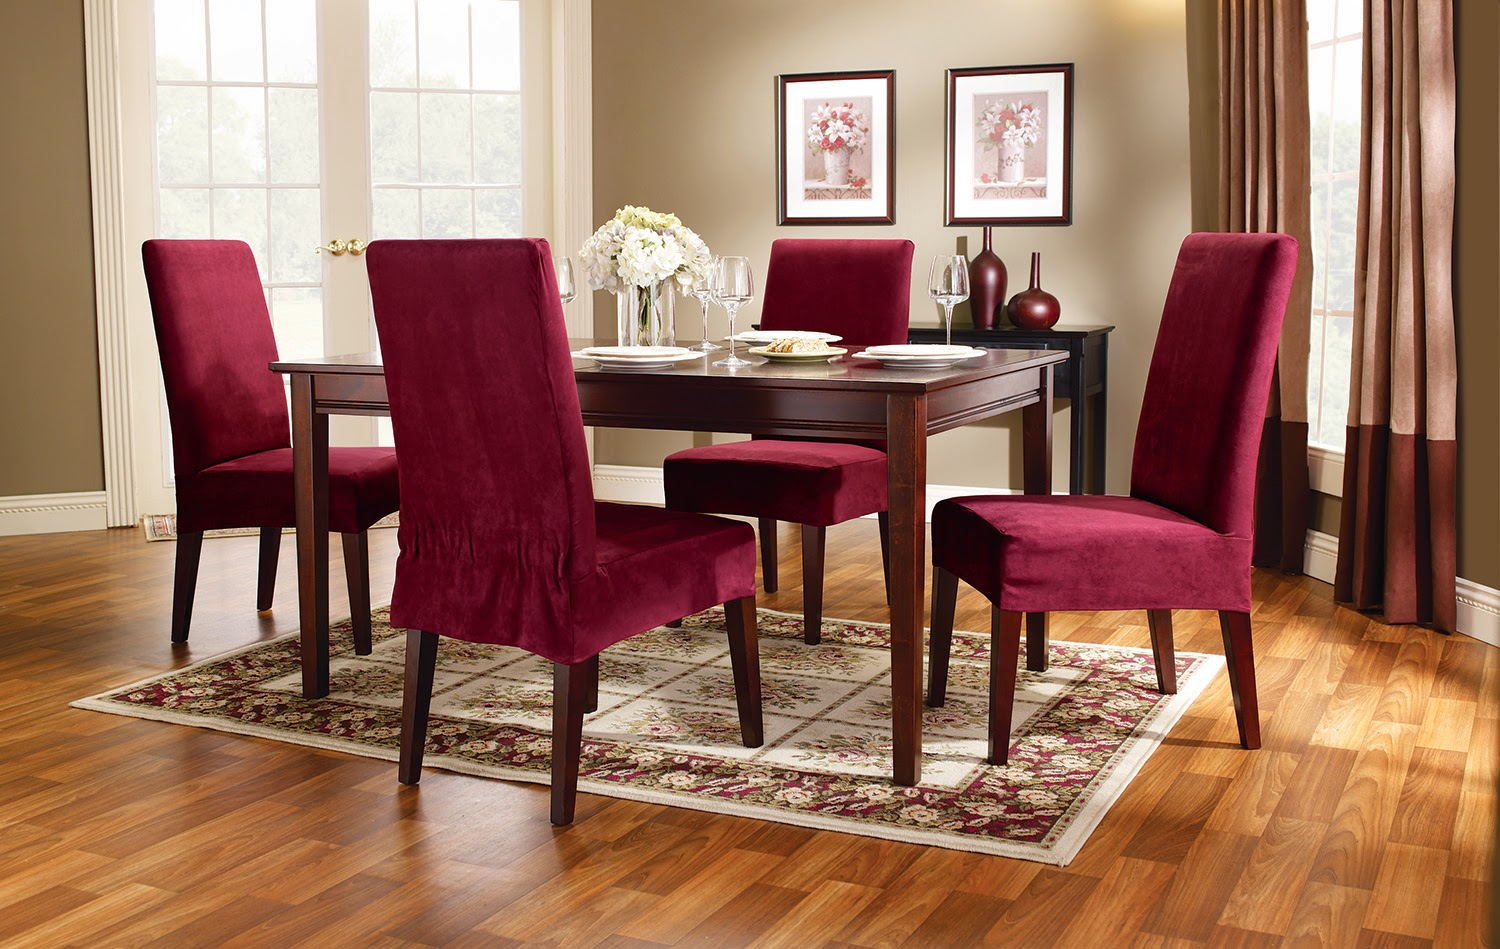 Featured Photo of Dining Room Chair Slipcovers For On Budget Re Decoration